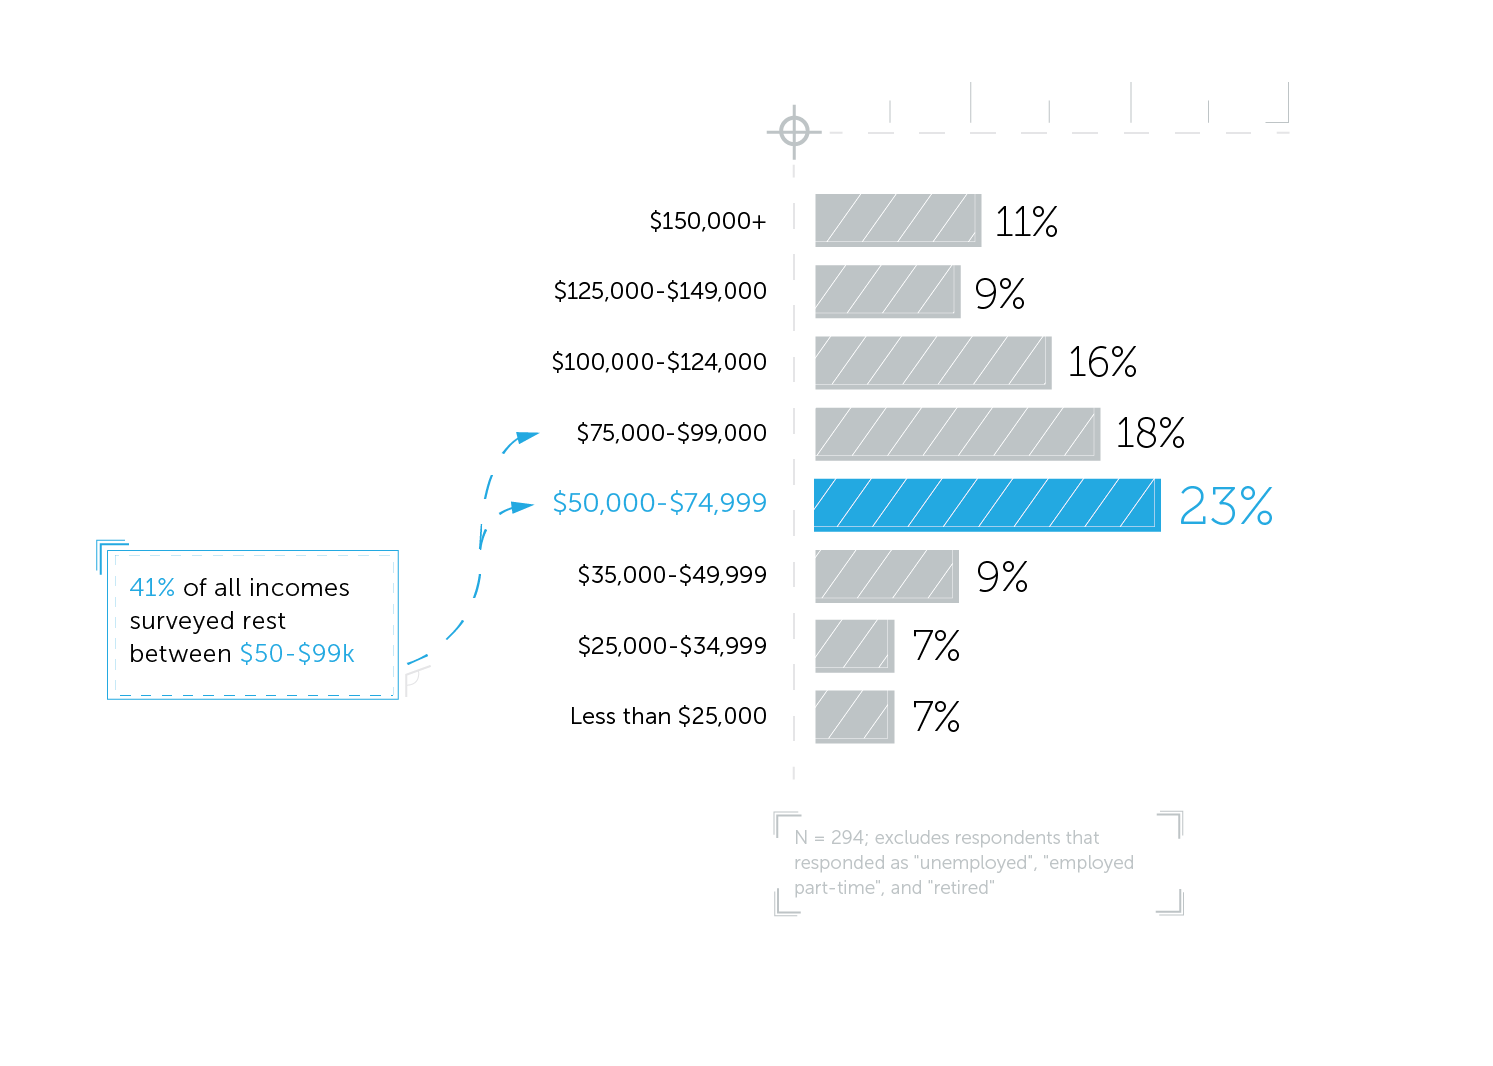 State of Hardware Annual Income for Engineers and Designers